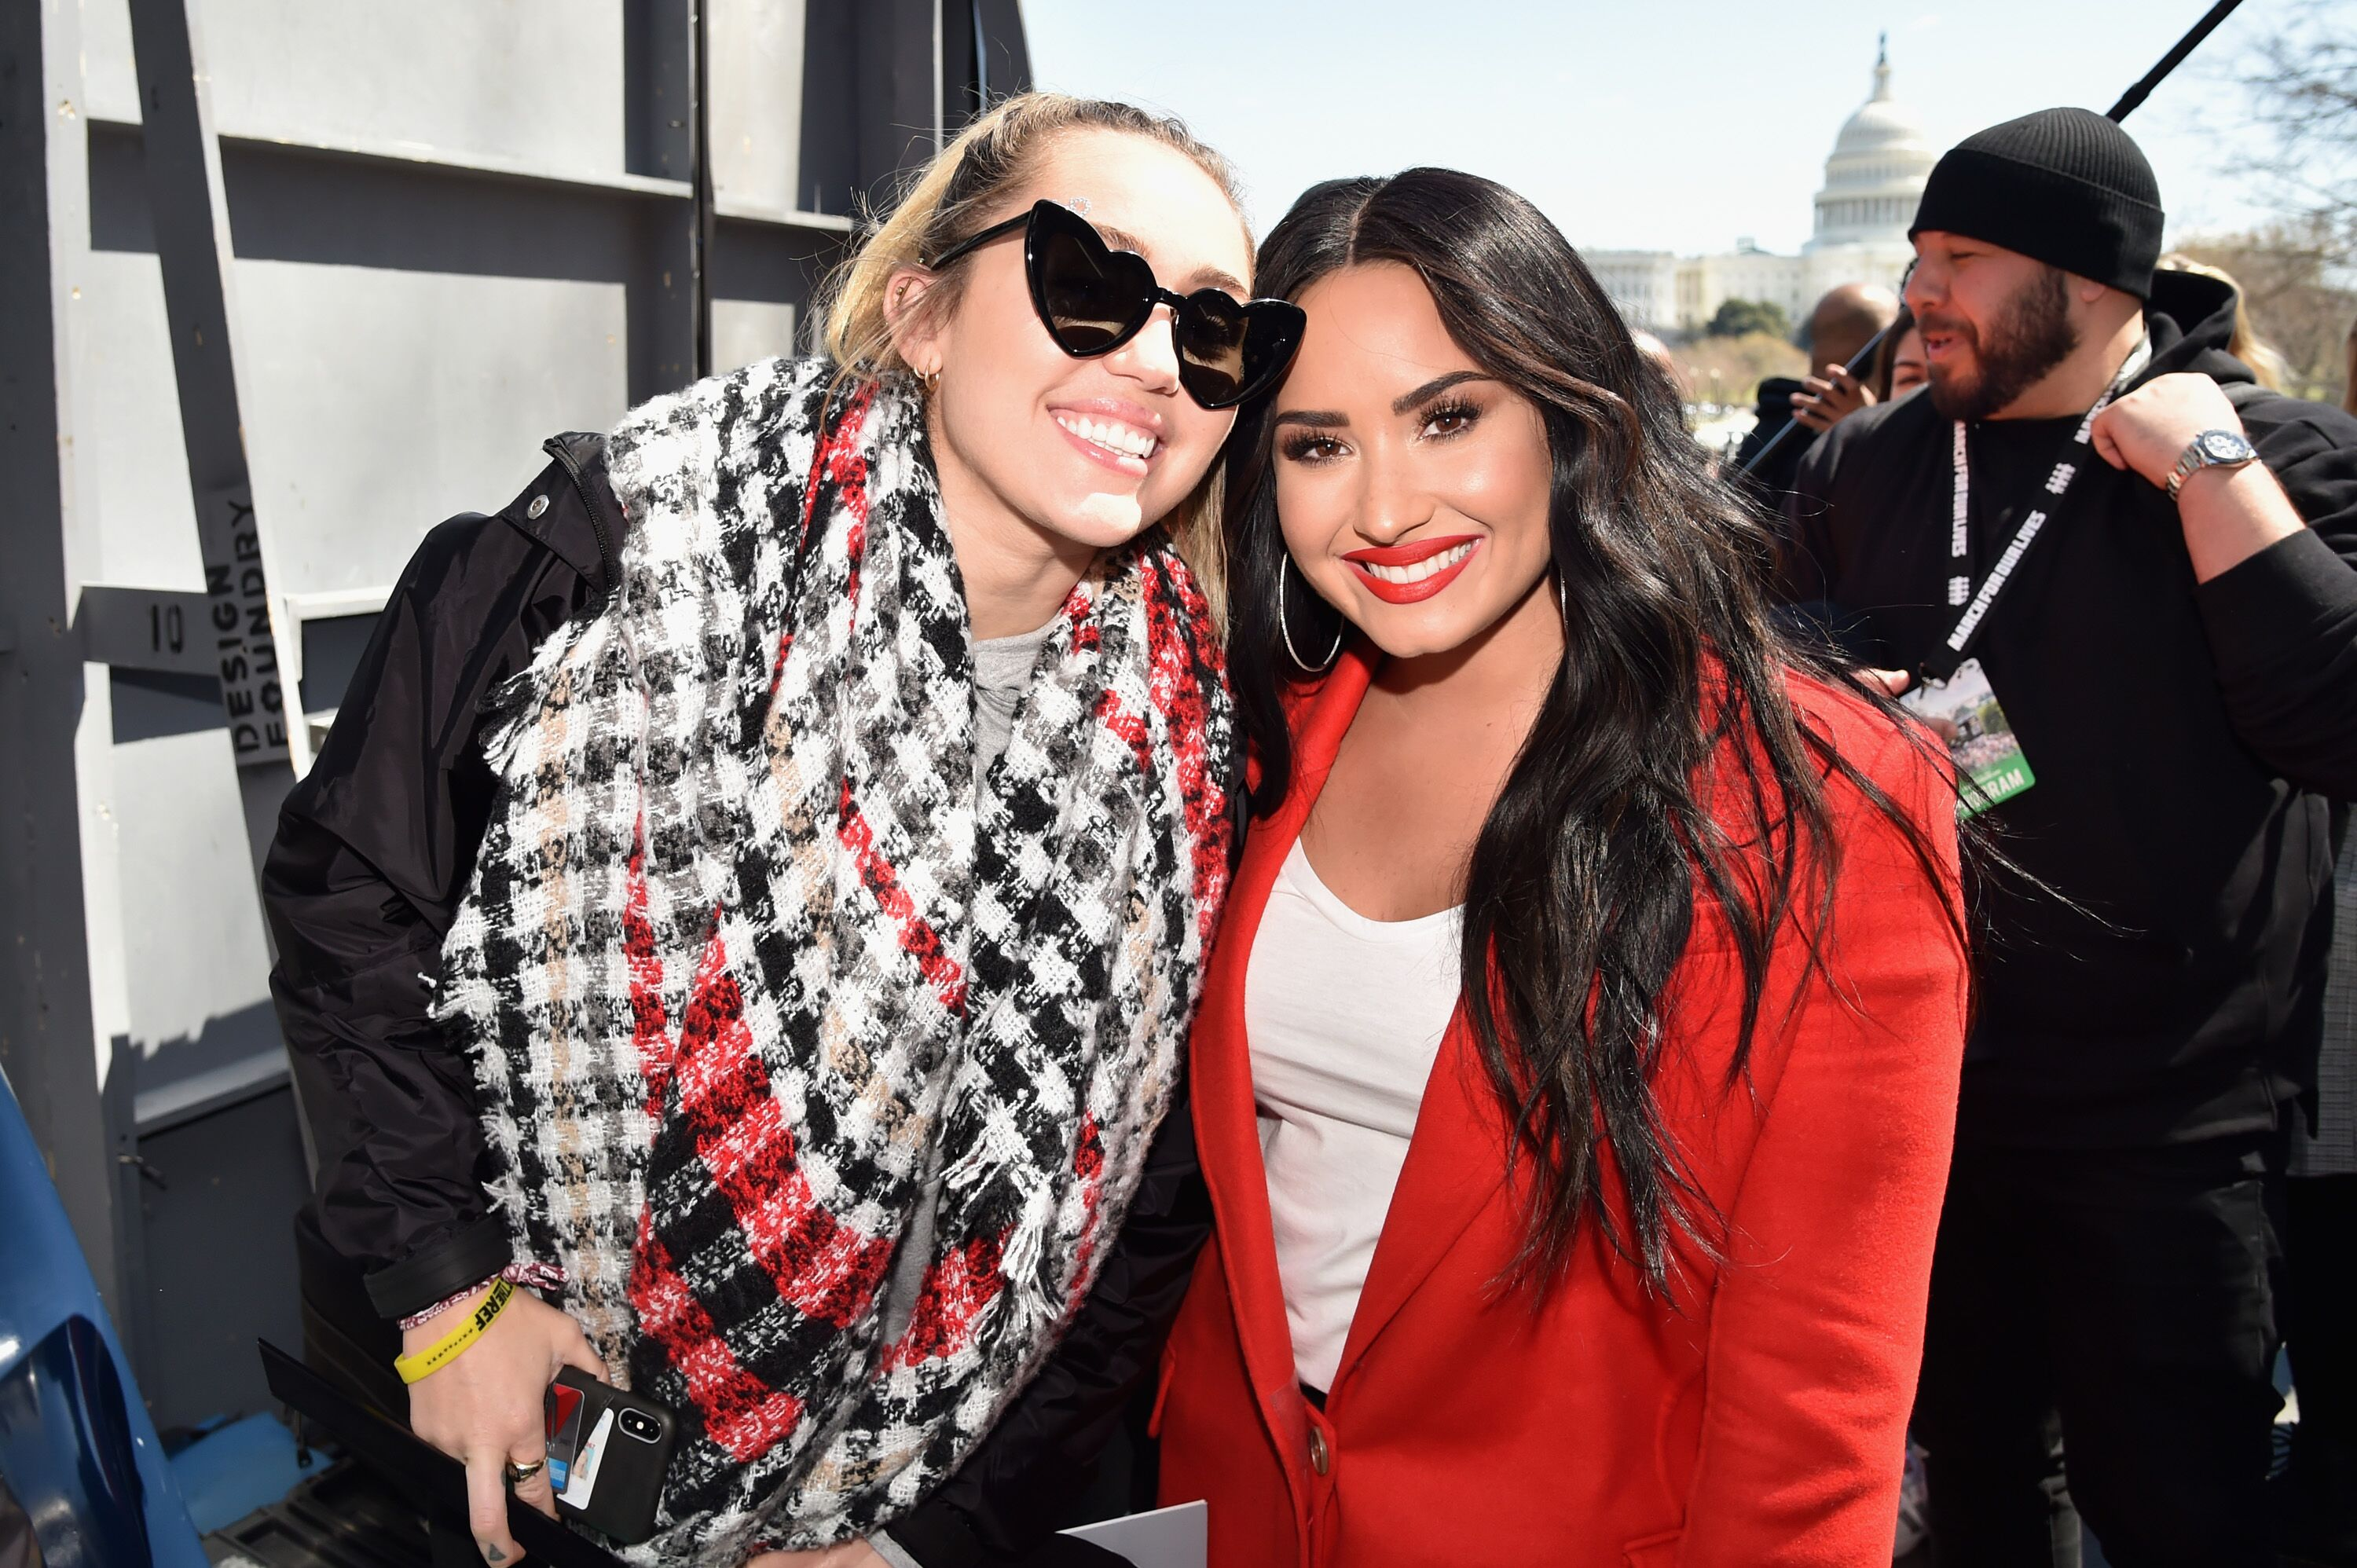 Miley Cyrus and Demi Lovato attend March For Our Lives on March 24, 2018 in Washington, DC. | Source: Getty Images